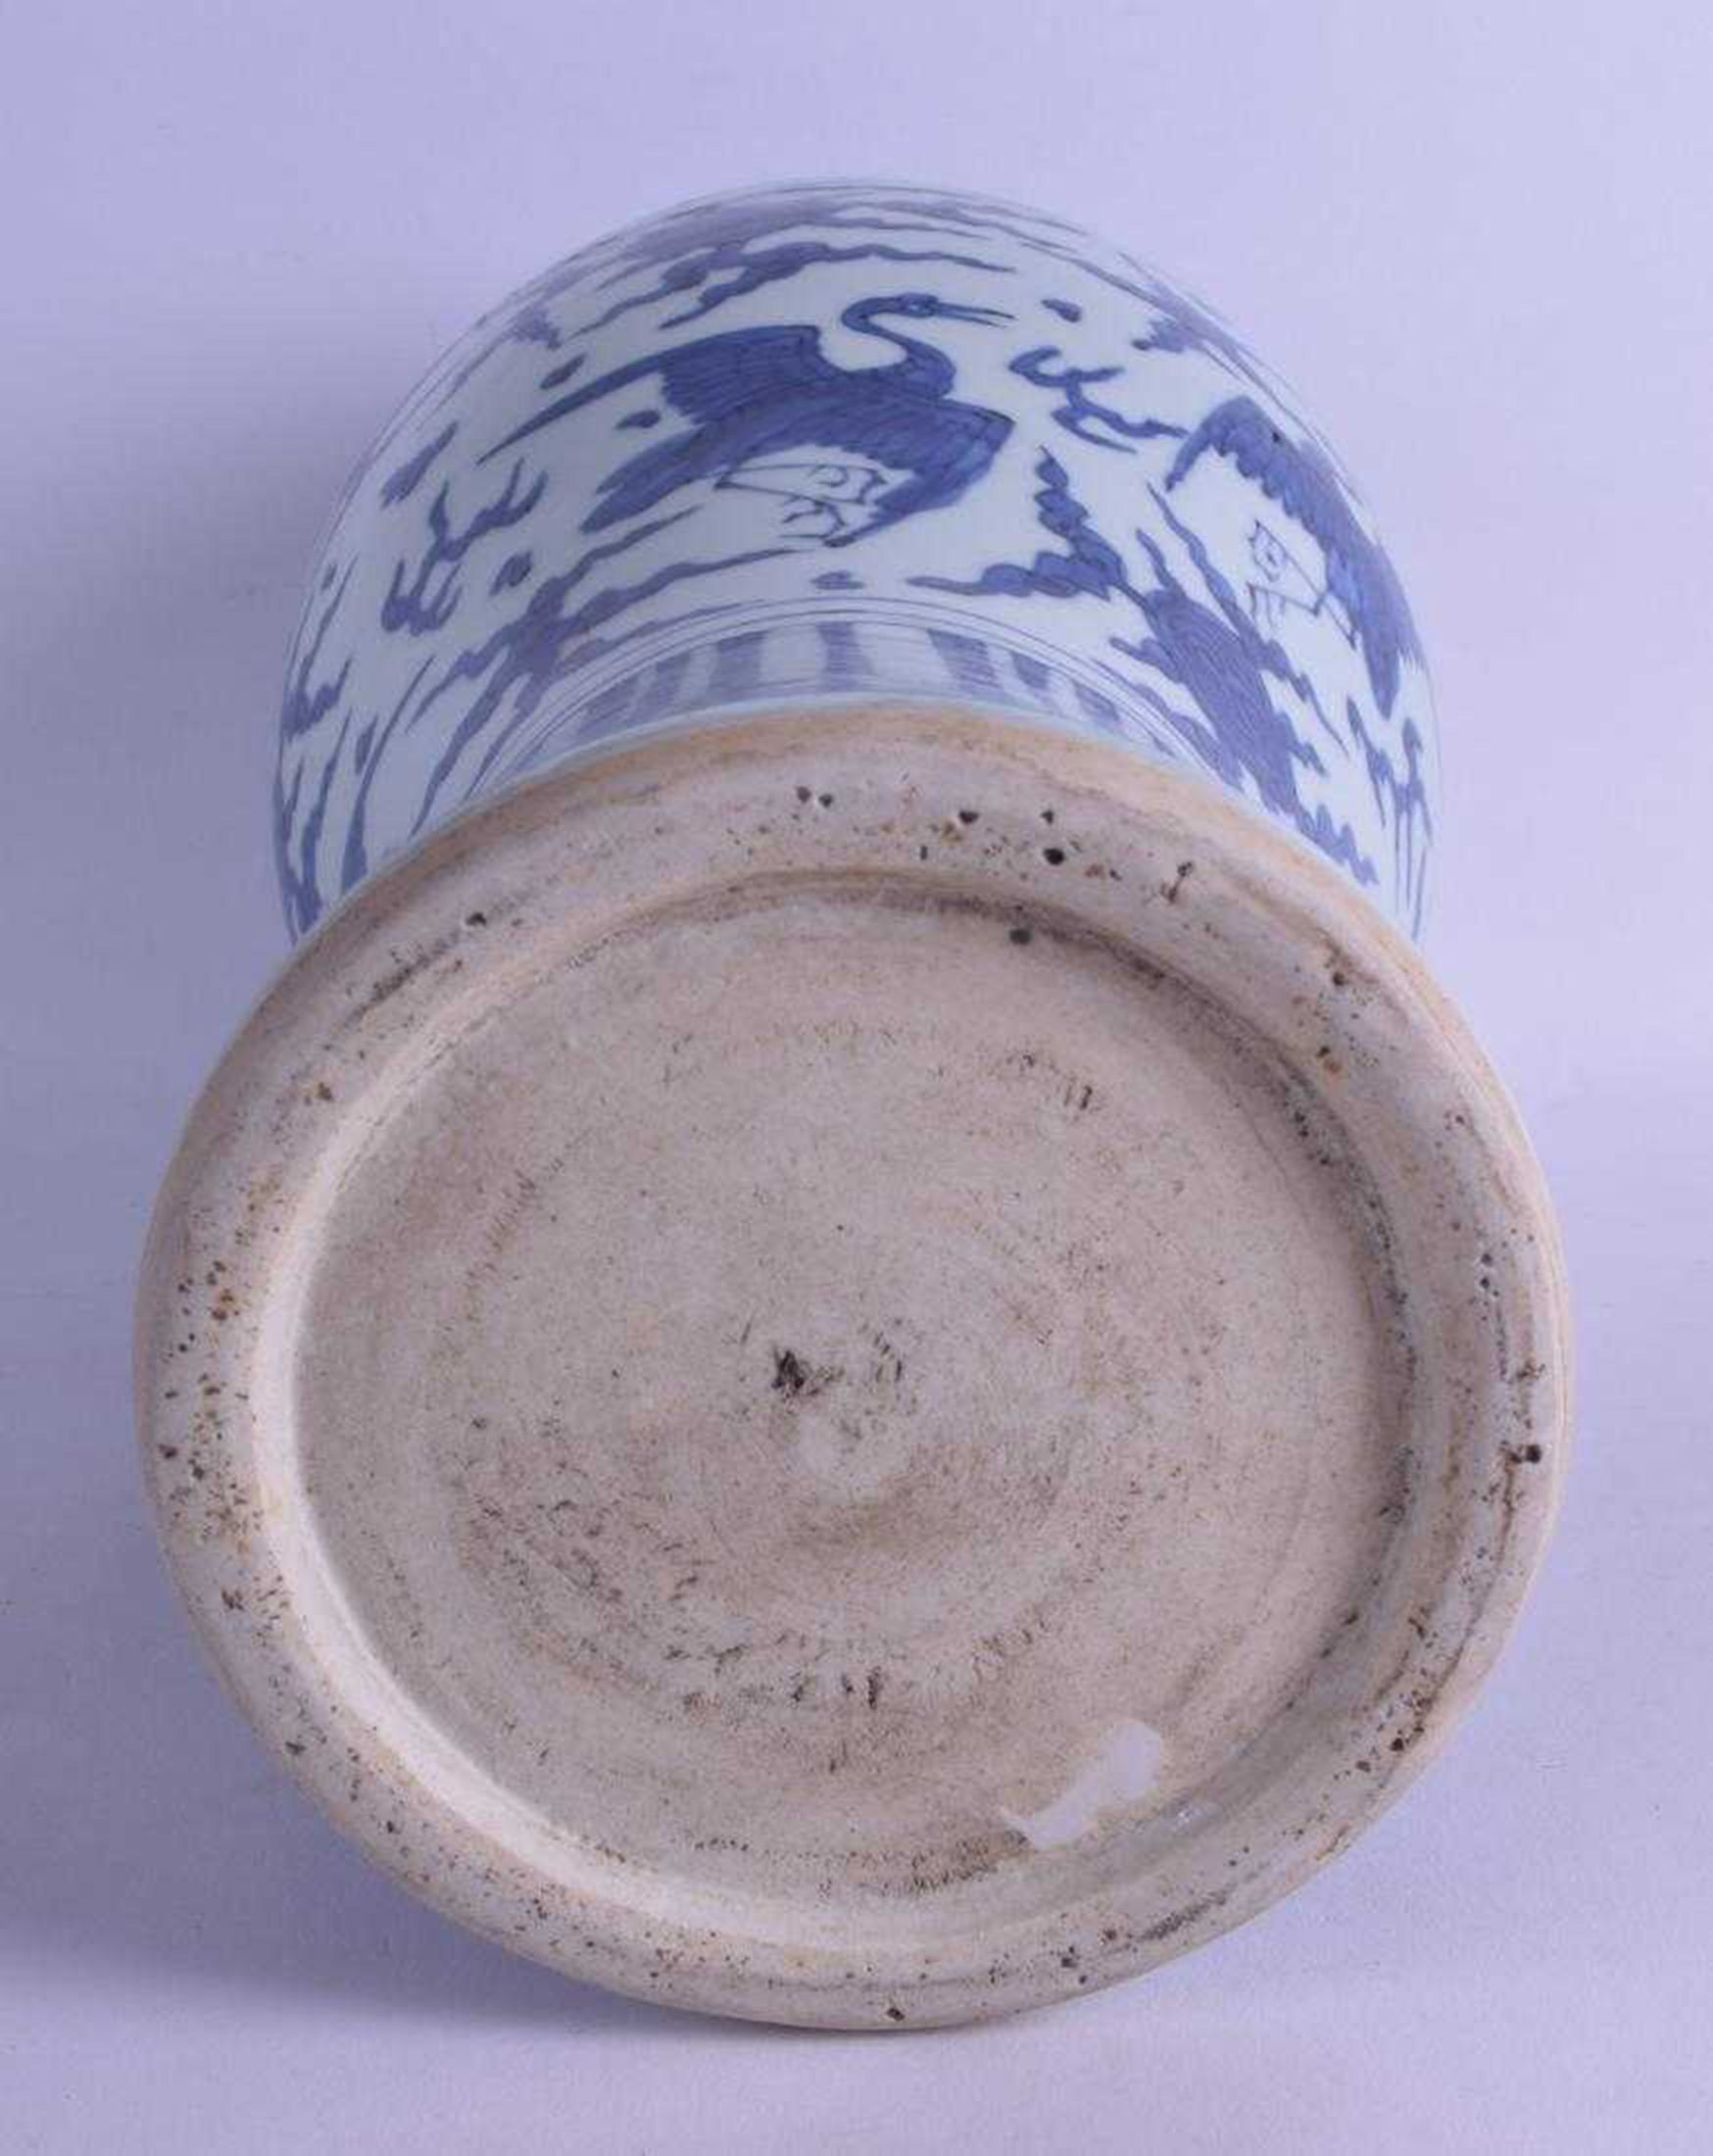 ming dynasty vase value of large chinese blue and white meiping vase throughout 7 images large chinese blue and white meiping vase